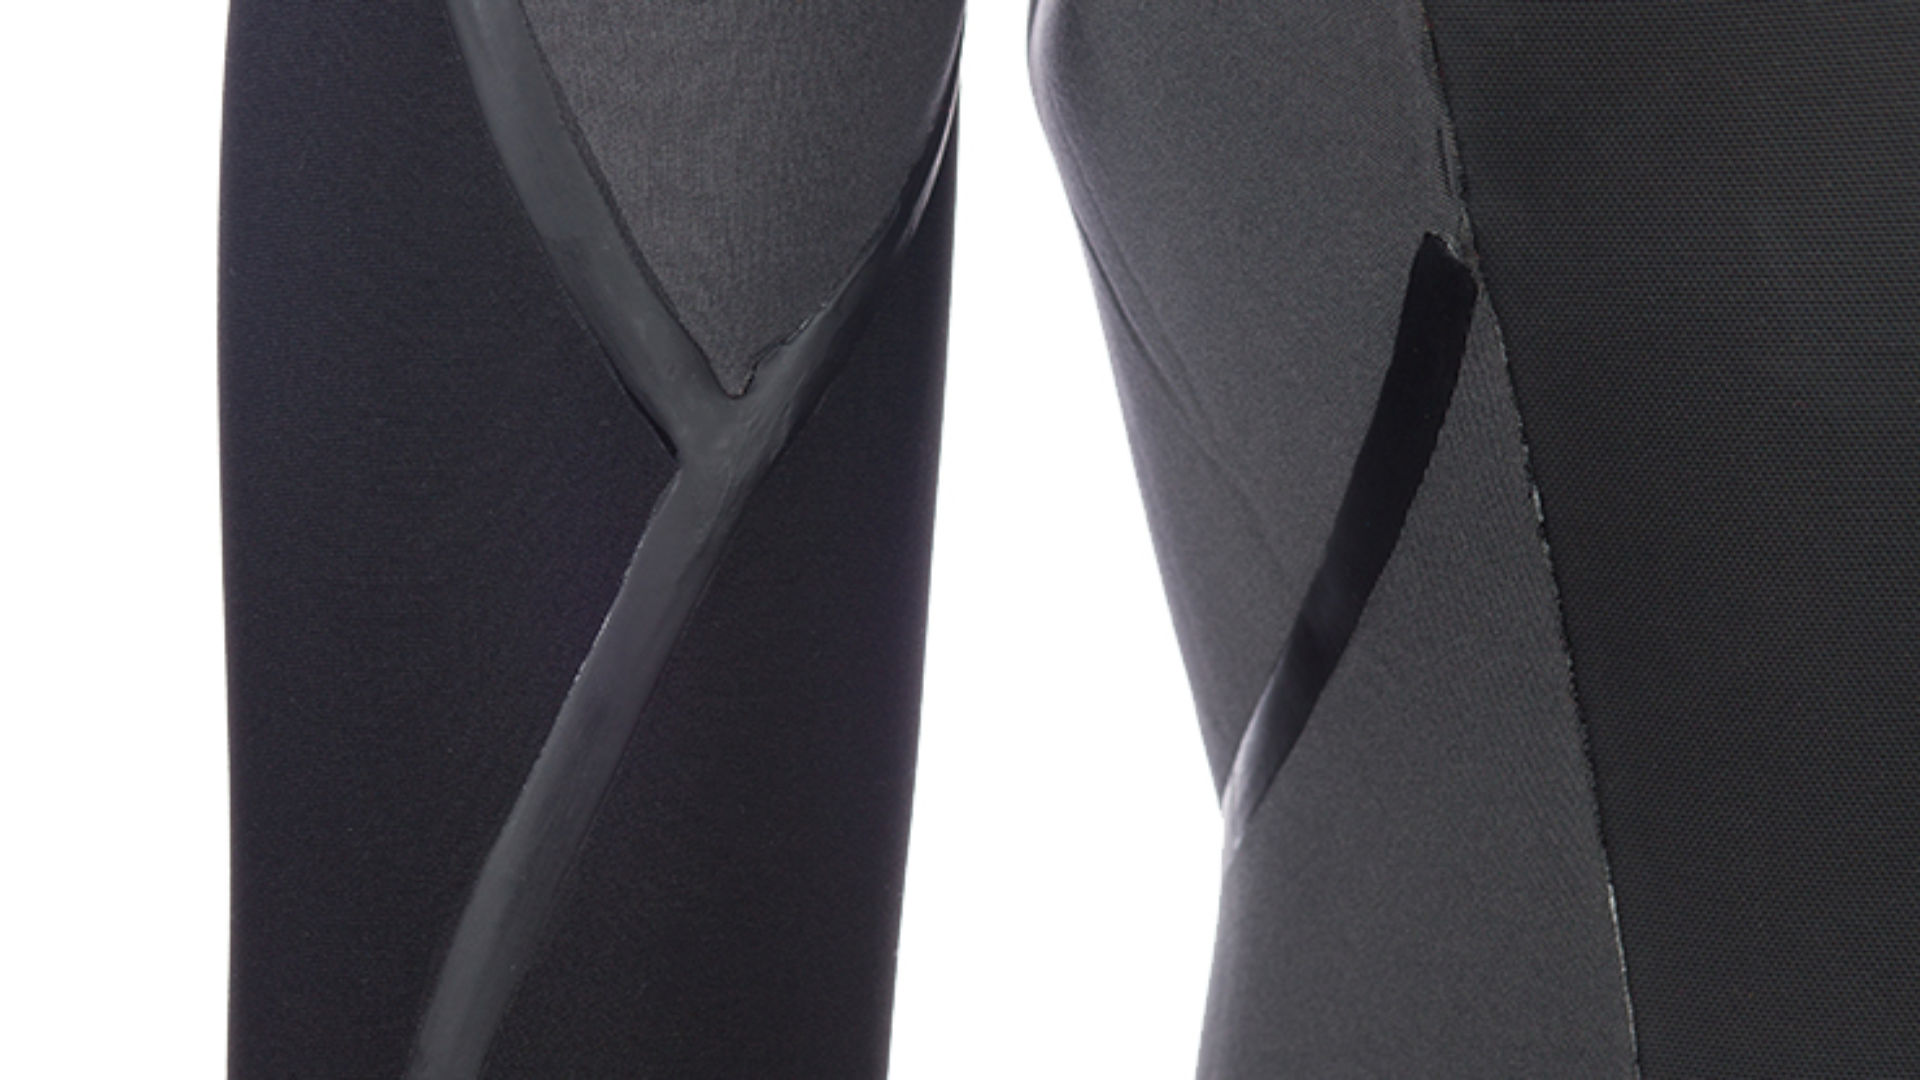 The inside of wetsuit legs with liquid seam sealing